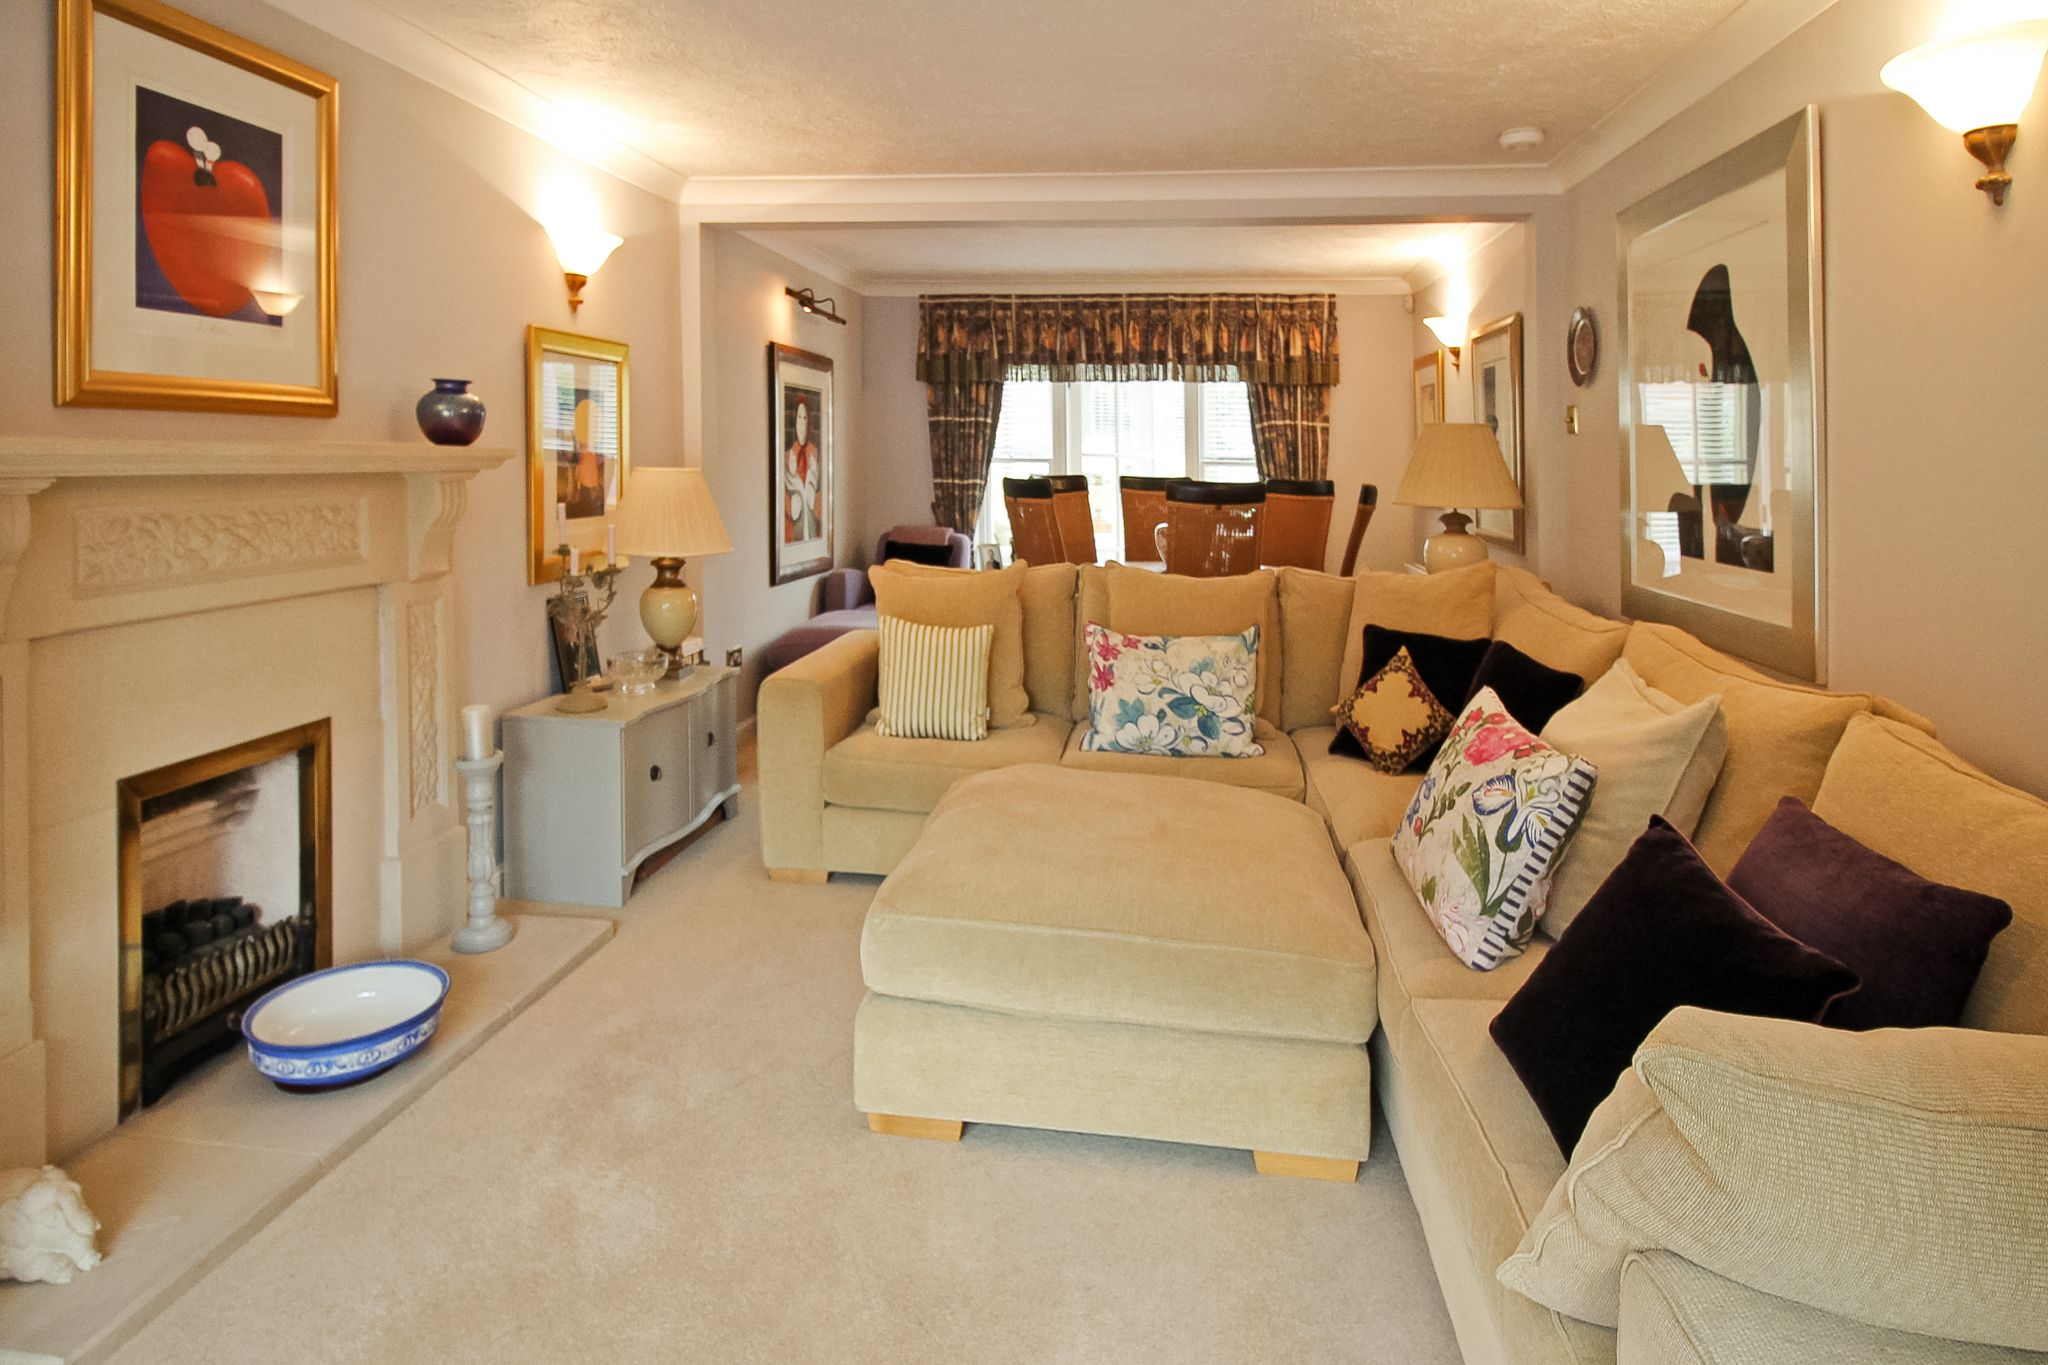 4 bedroom detached house For Sale in Solihull - Photograph 3.